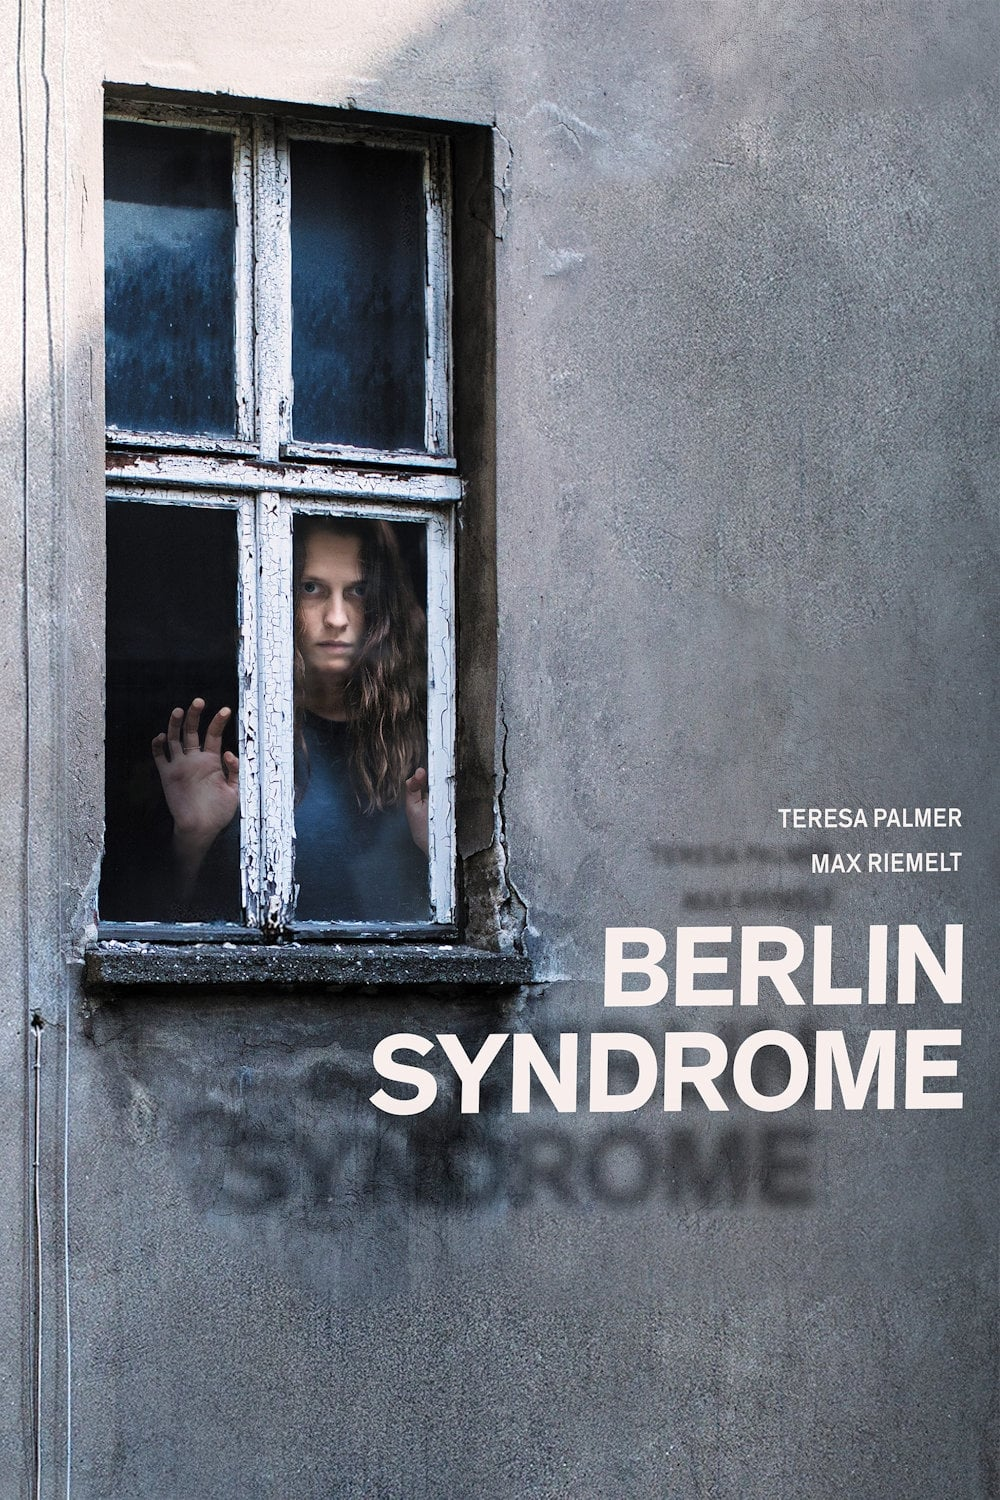 Assistir Berlin Syndrom Legendado Online Legendado 1080p